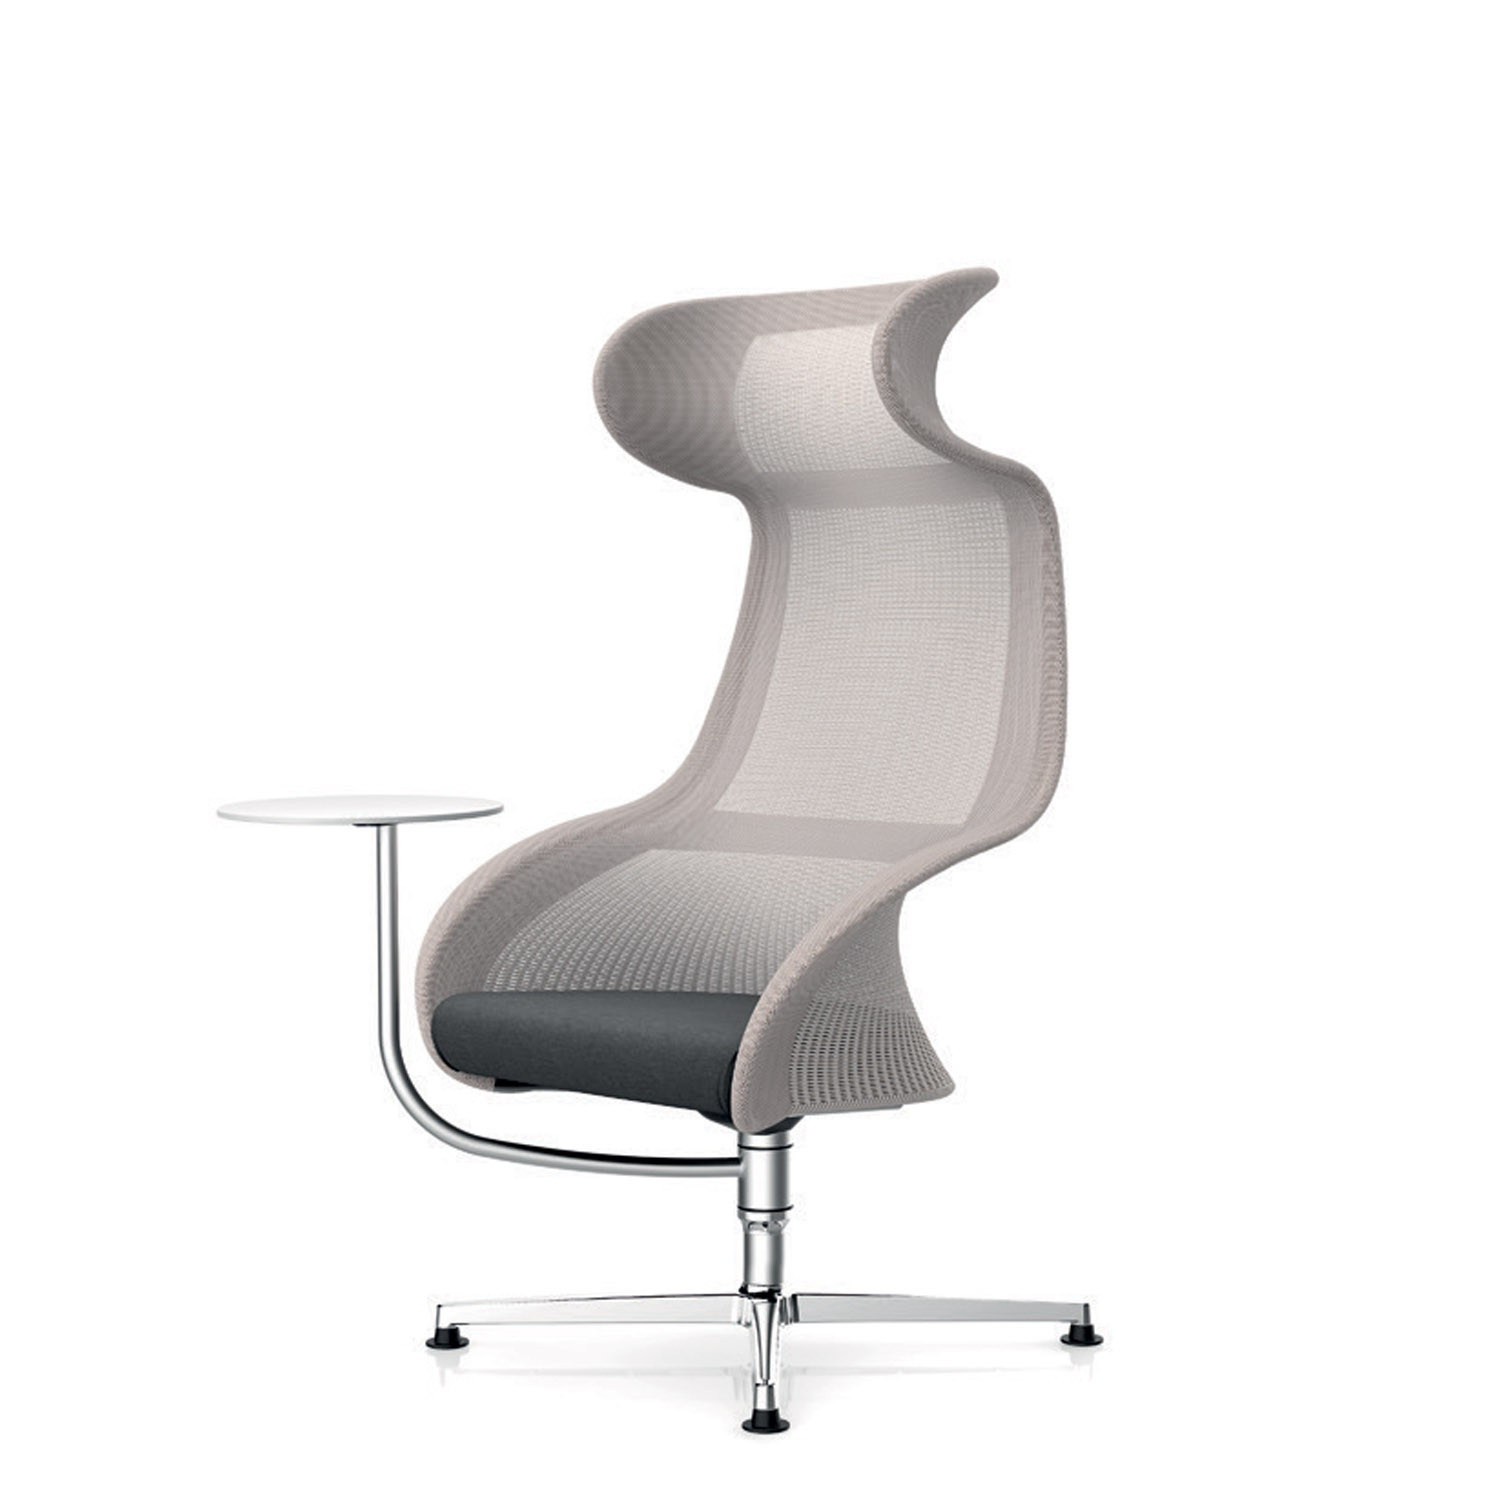 Oasis Chair with Swivel Action Tablet